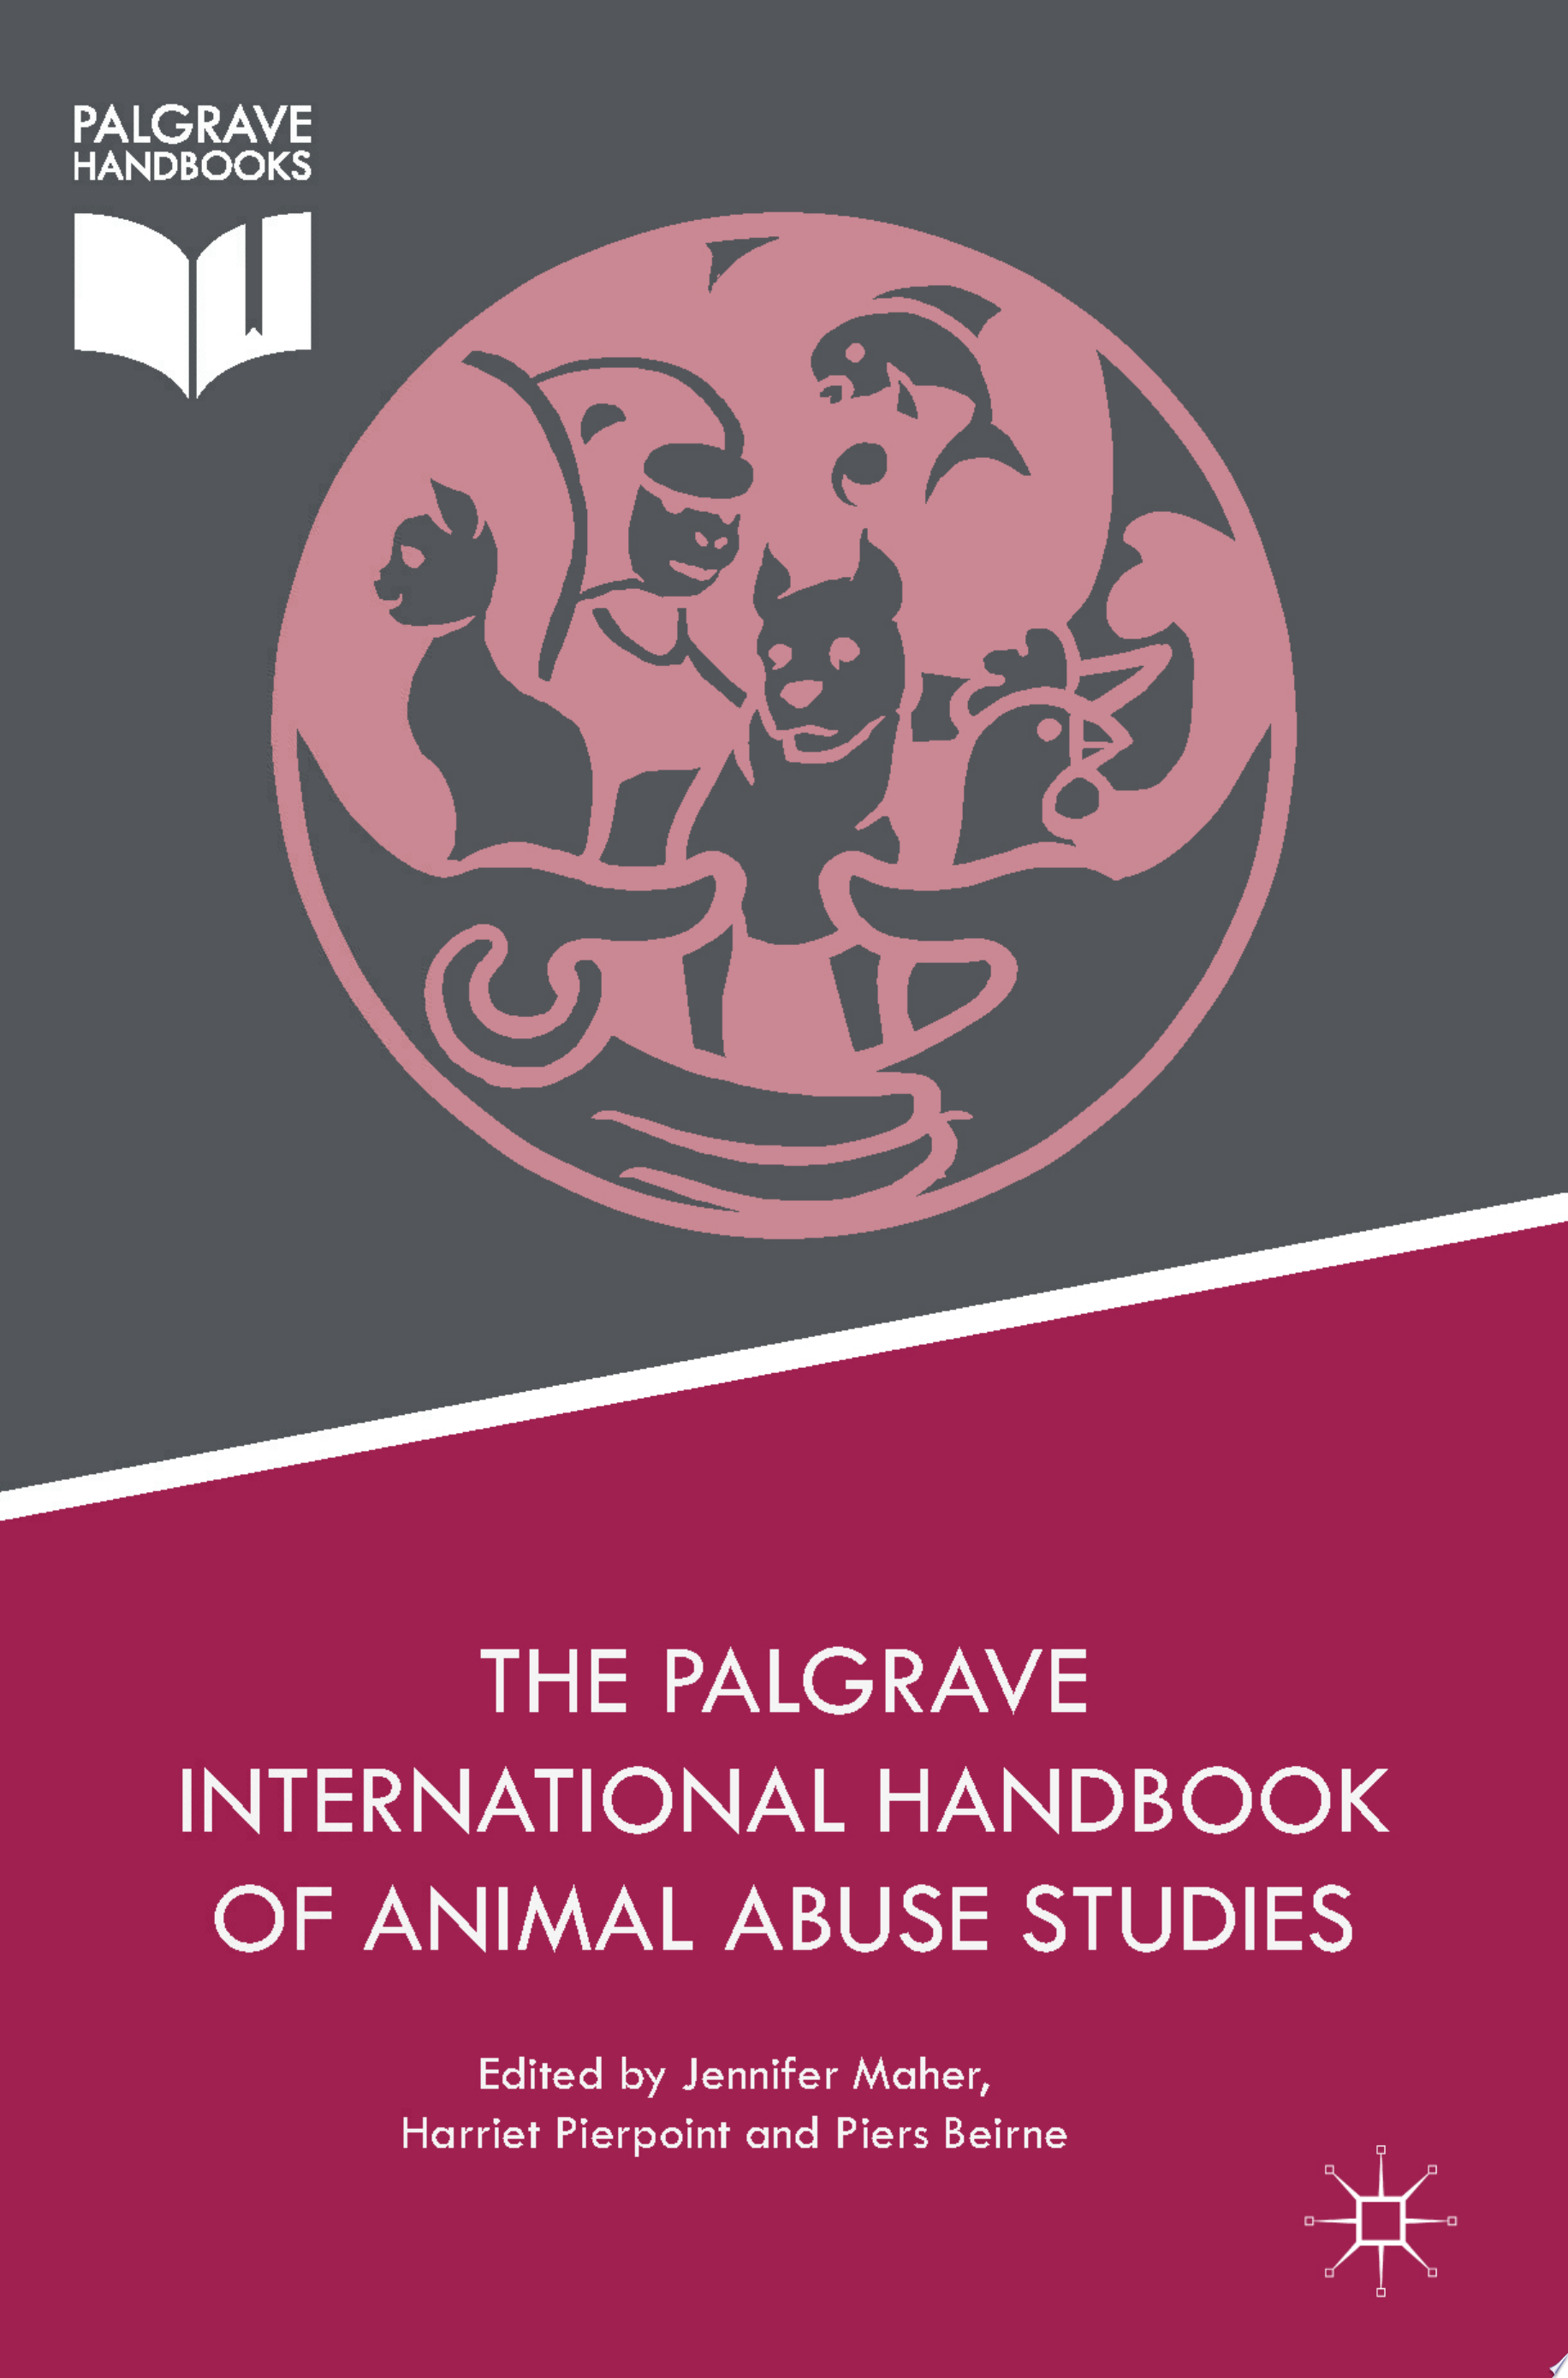 The Palgrave International Handbook of Animal Abuse Studies